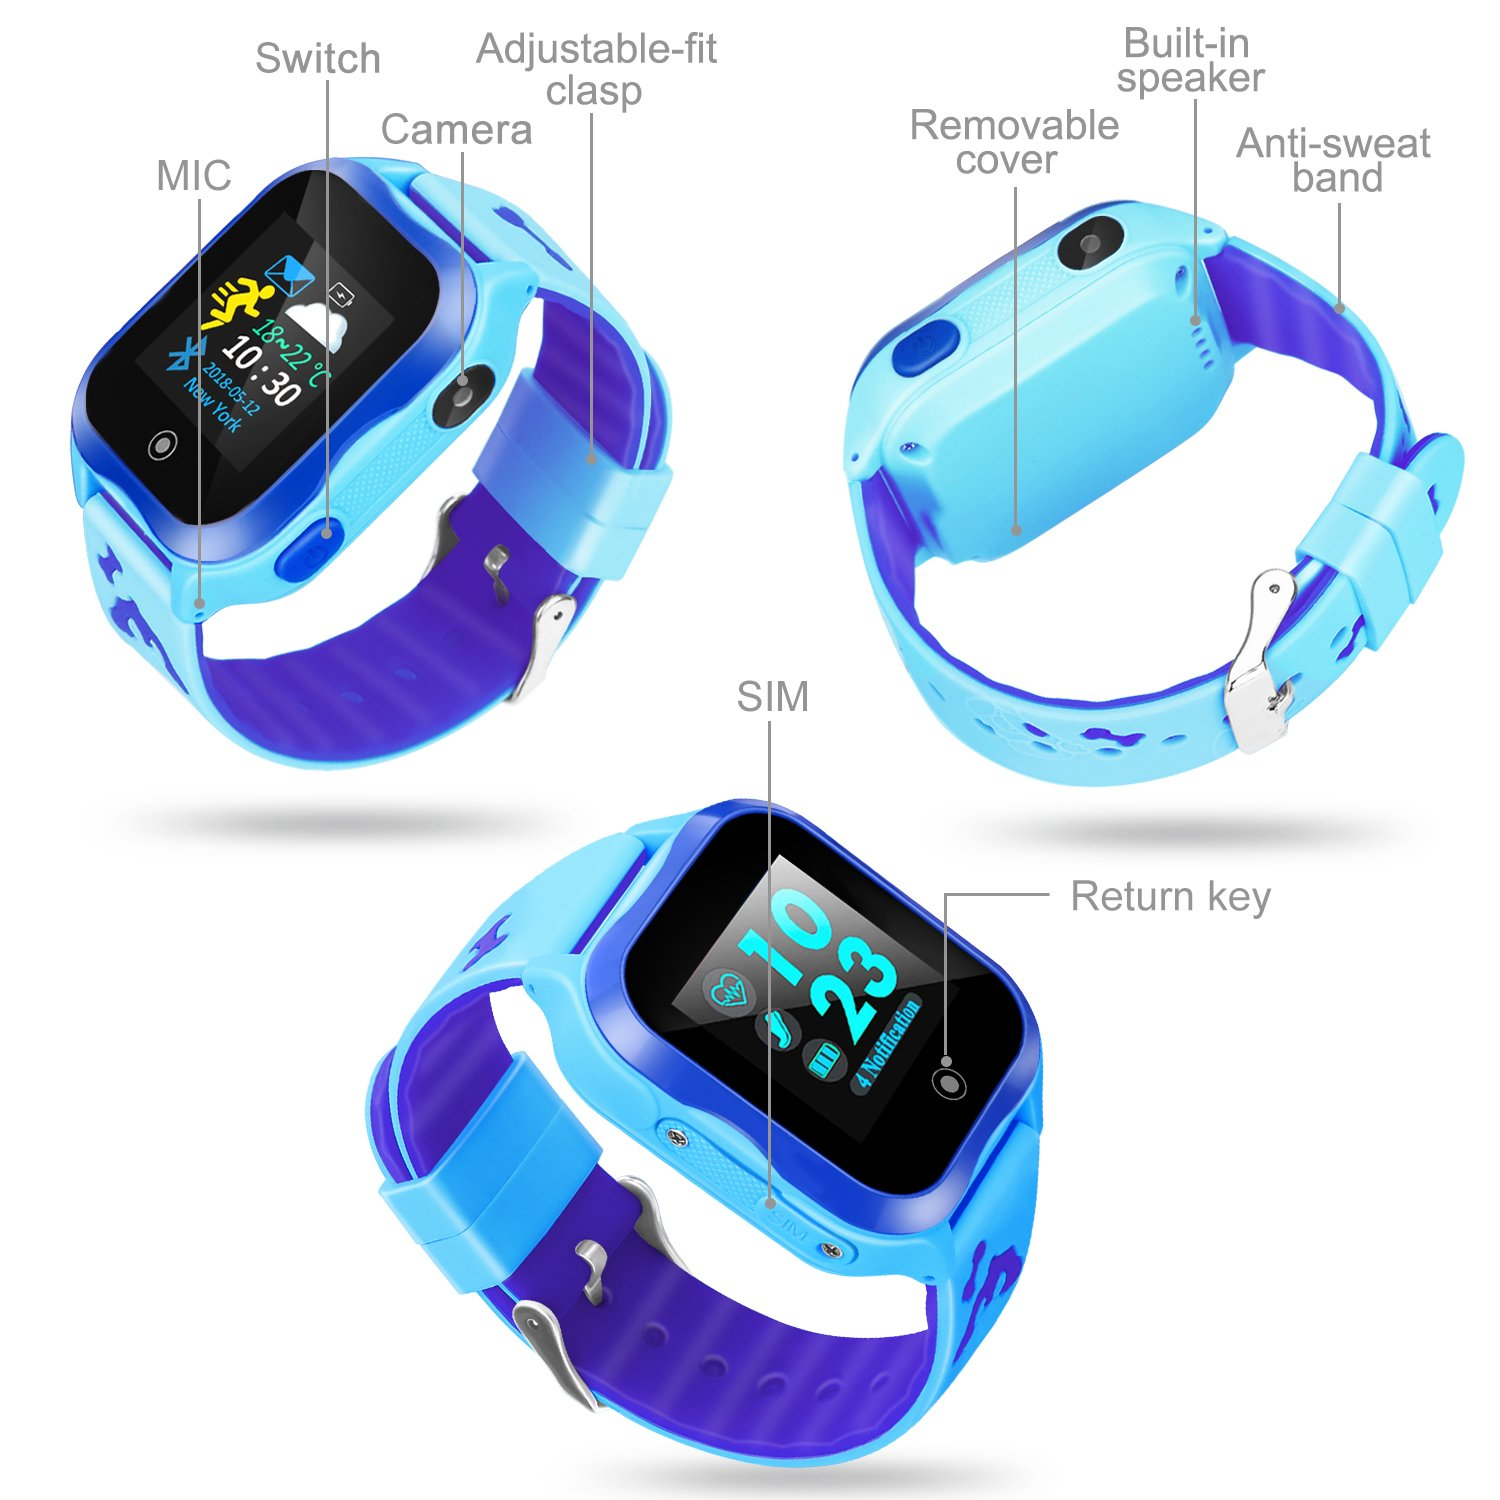 LJRYCQSSZSF Kids Smart Watch Phone GPS Tracker Ip67 Waterproof Kids Smartwatches Age 3-15 Boys Girls Touch Screen SIM Slot Educational Toys Phone 1.44 Inch Birthday Gift (Blue) by LJRYCQSSZSF (Image #2)